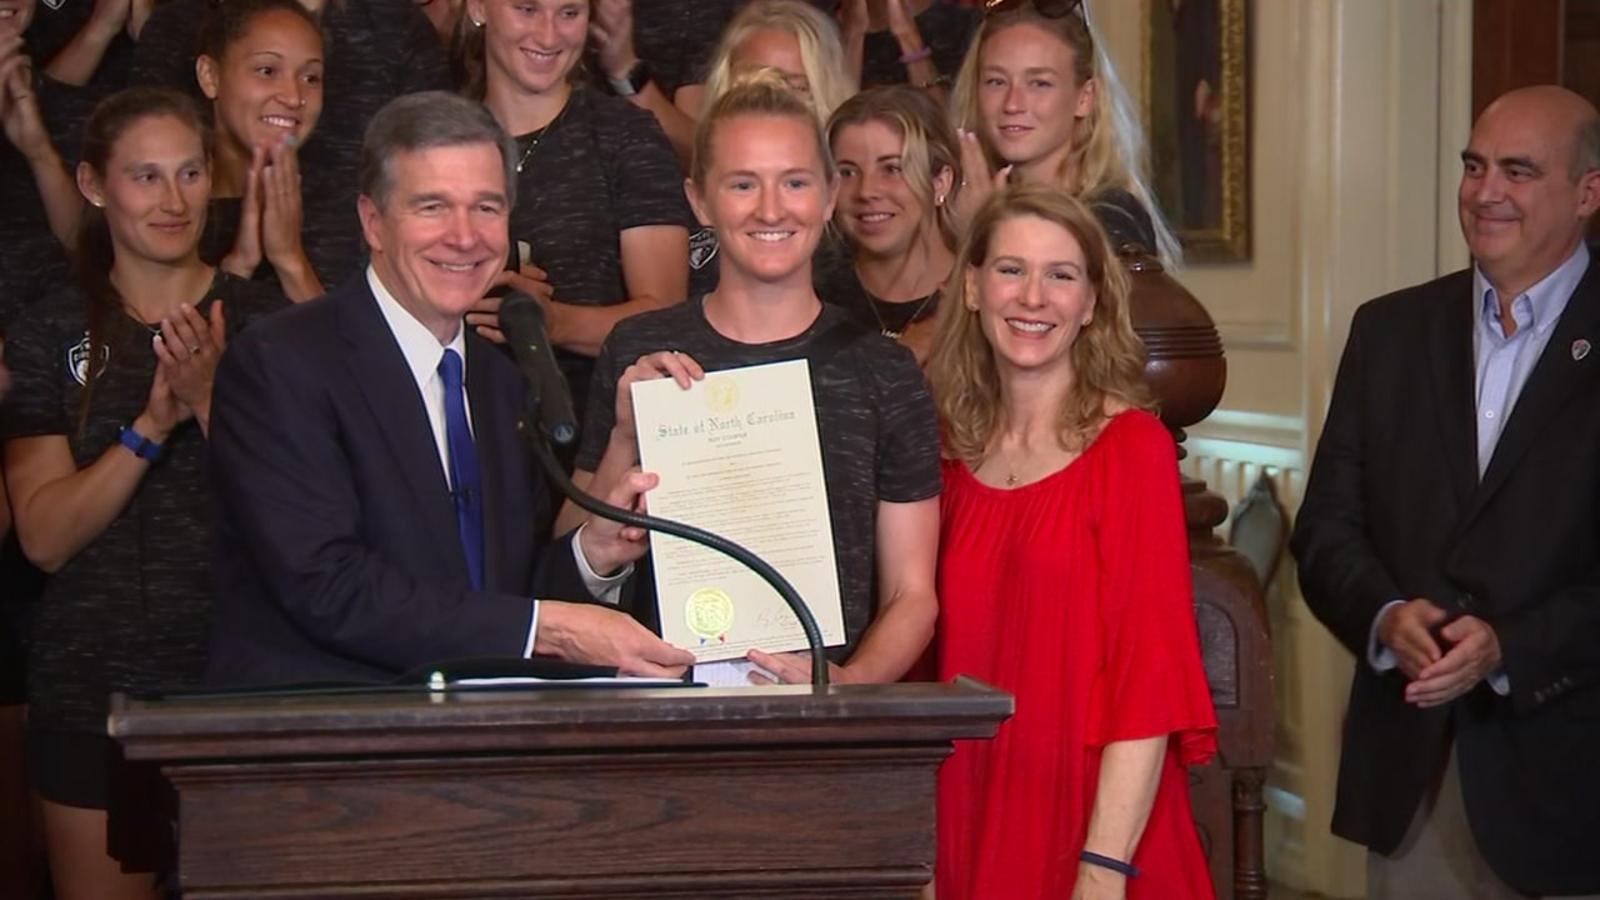 NC Courage recognized by Gov. Roy Cooper at NC Executive Mansion